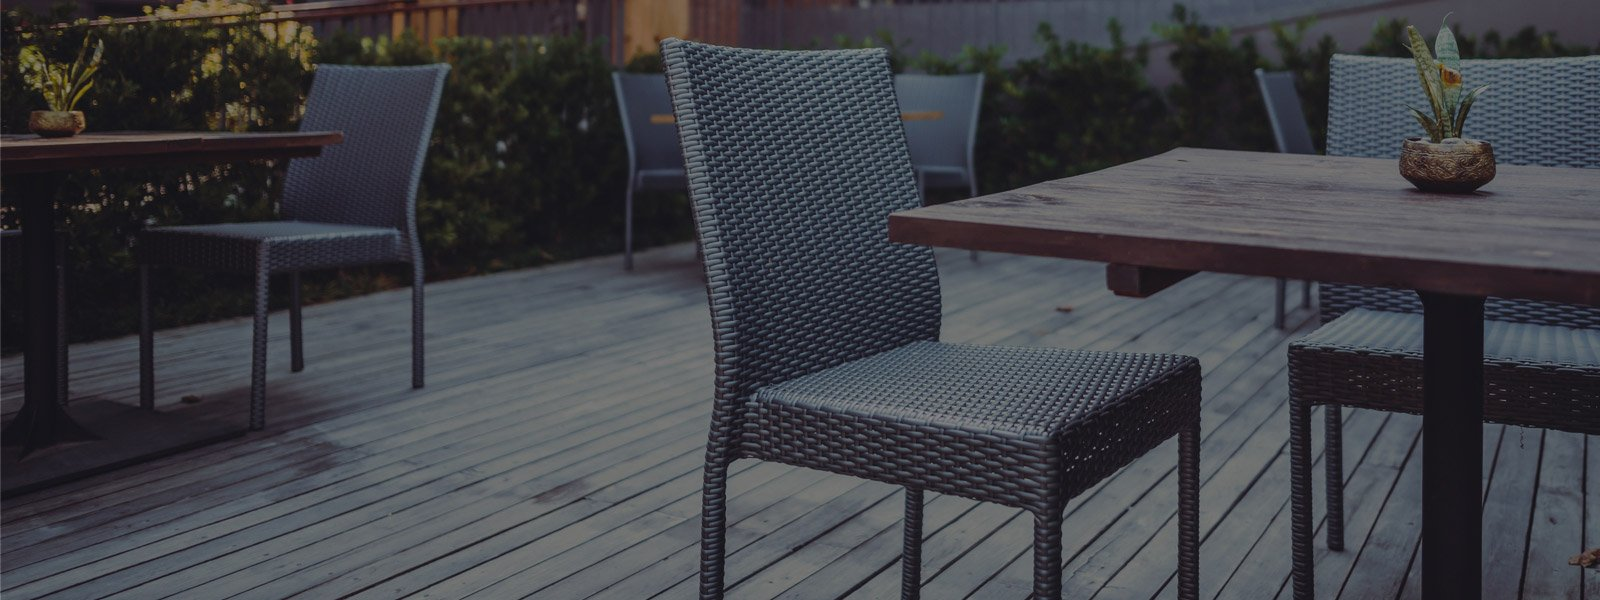 Outdoor Furniture Patio Tables Chairs